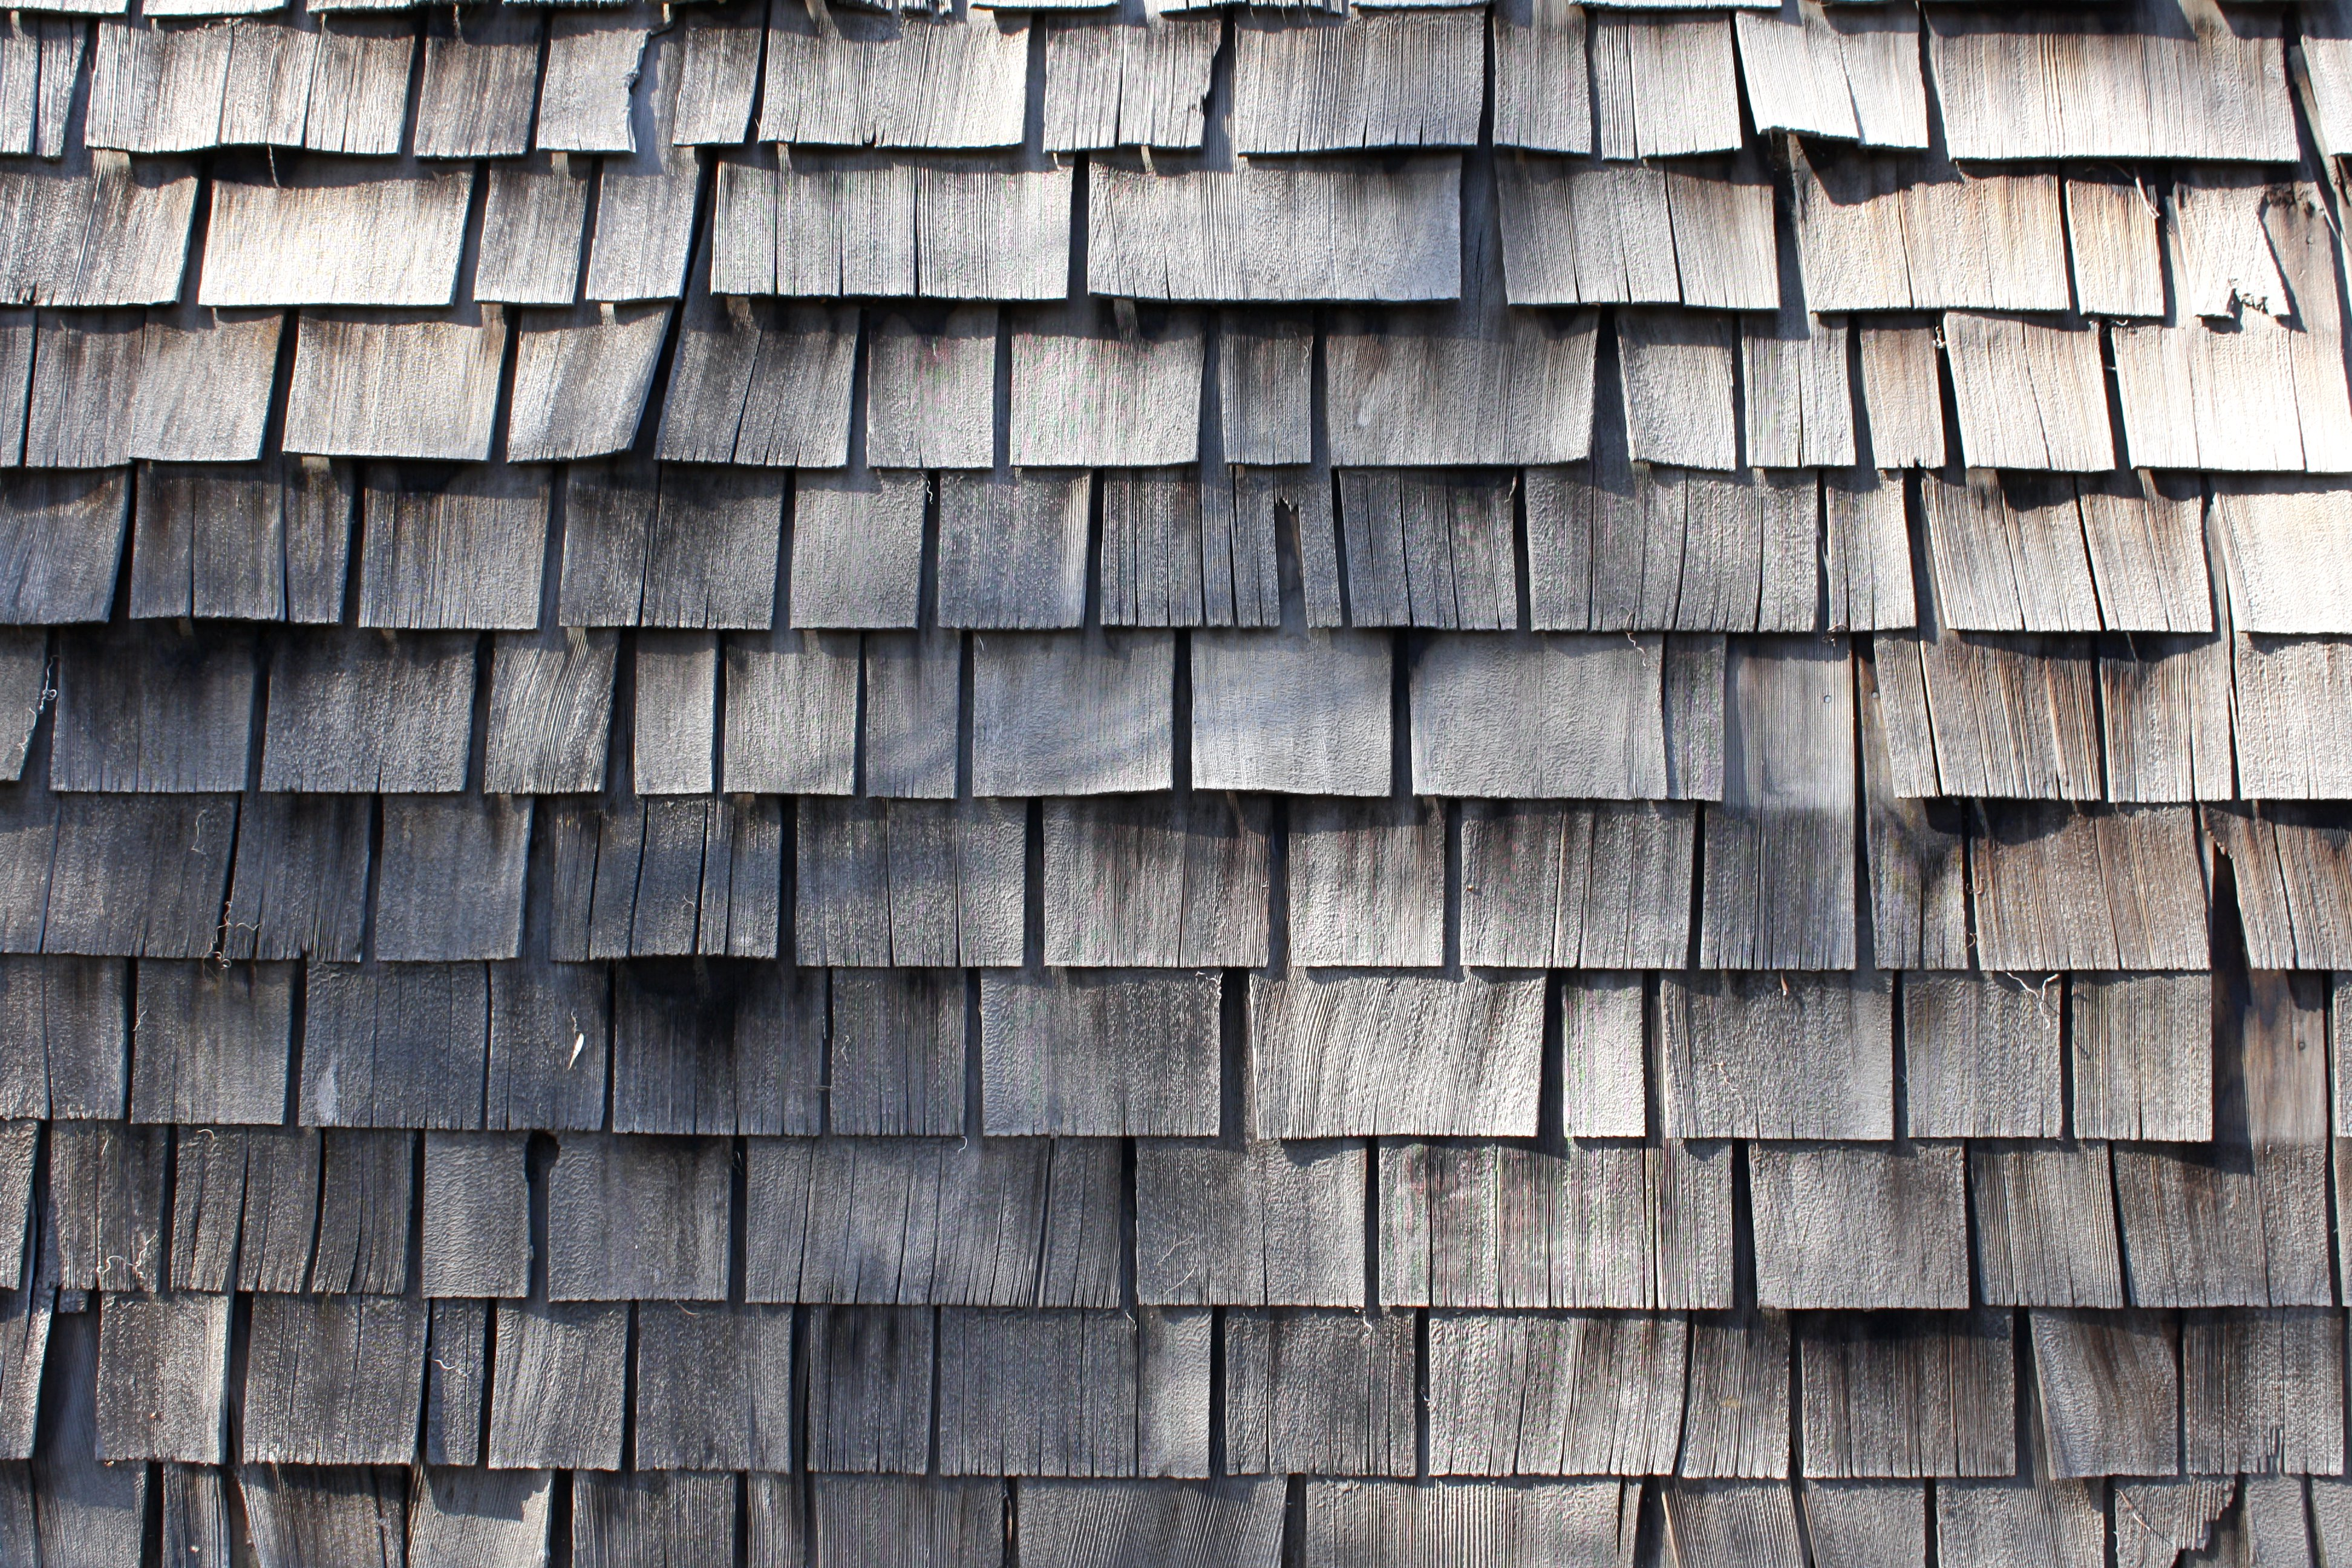 what are shingles? essay Capstone shingles capstone shingles irvine money never made a man happy essay the story of an hour kate chopin zusammenfassung need someone to type term paper on marketing for $10.